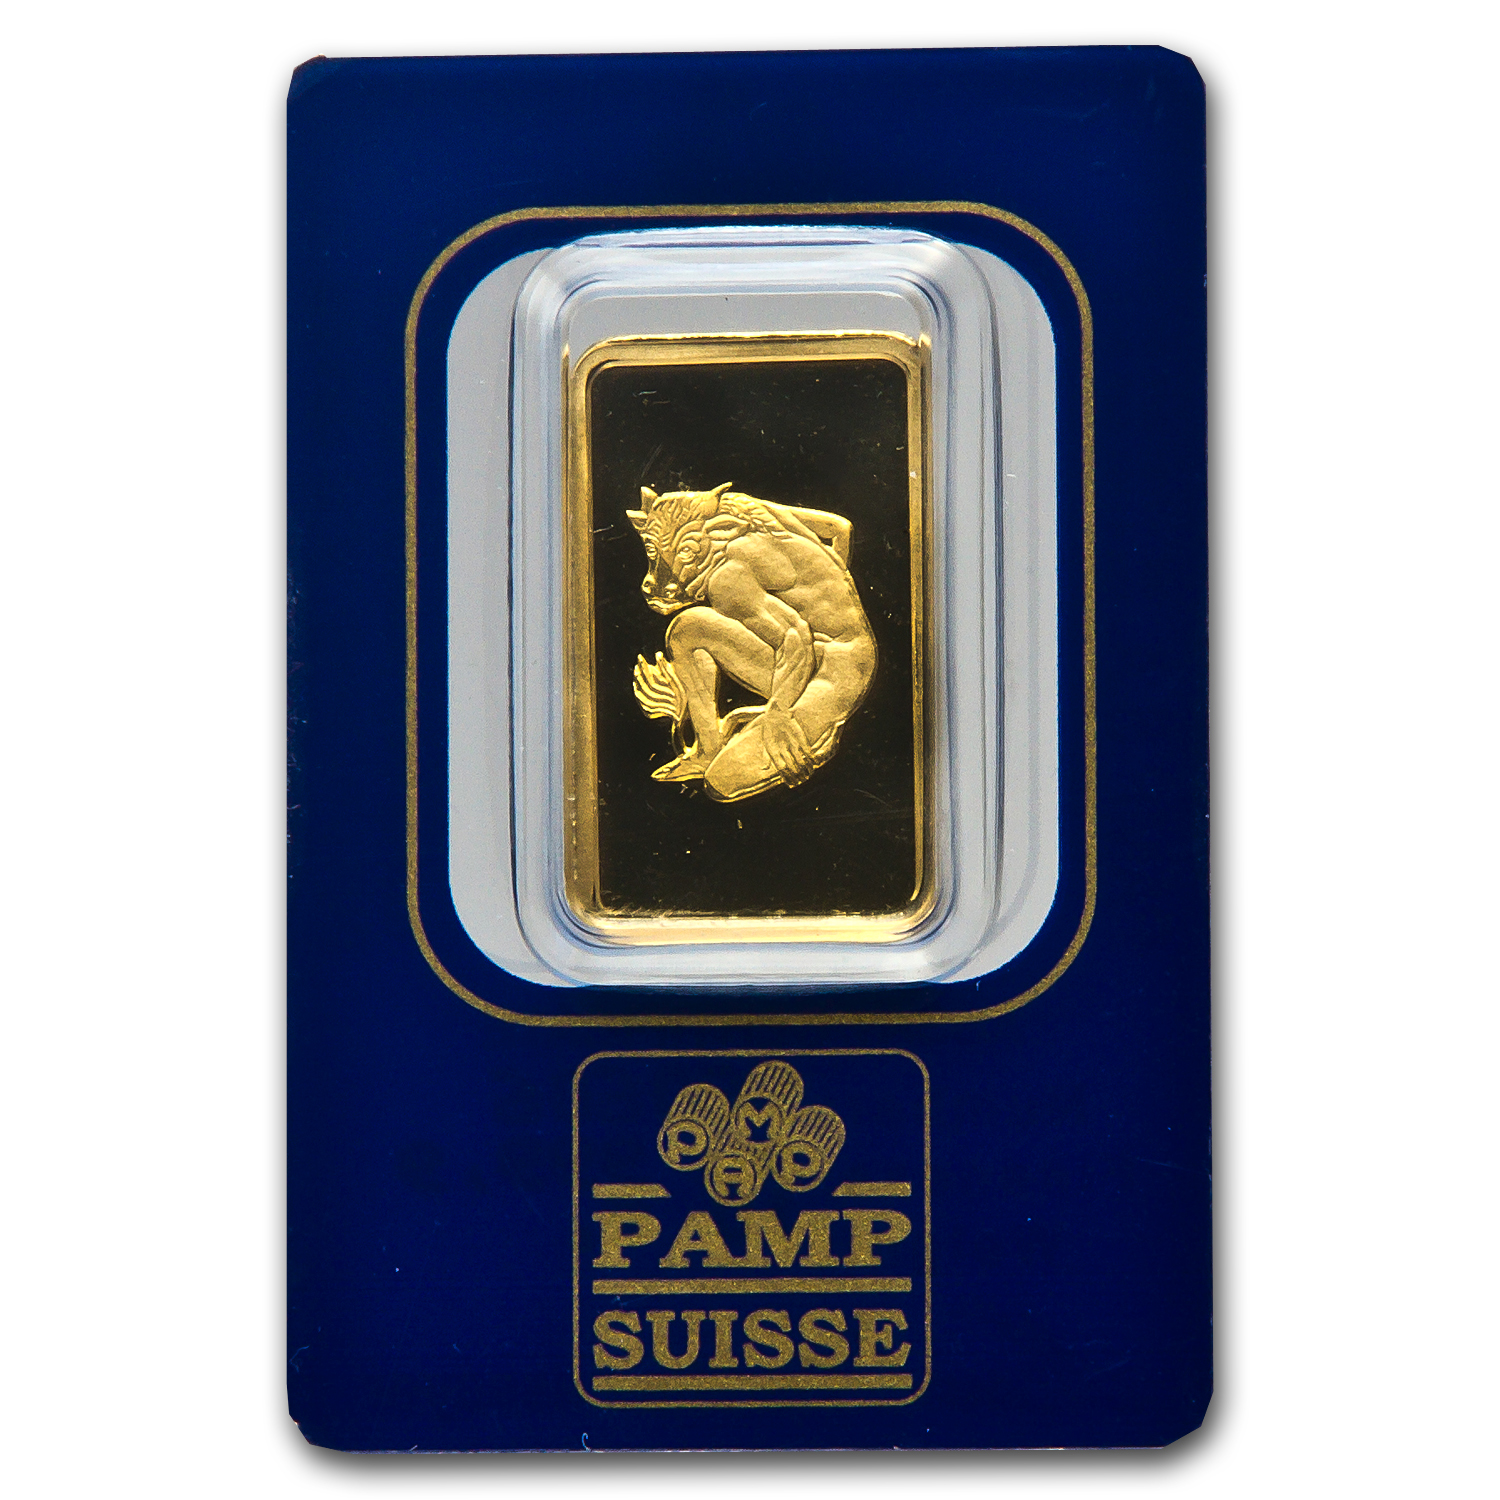 10 gram Gold Bar - Pamp Suisse (Taurus the Bull, in assay)